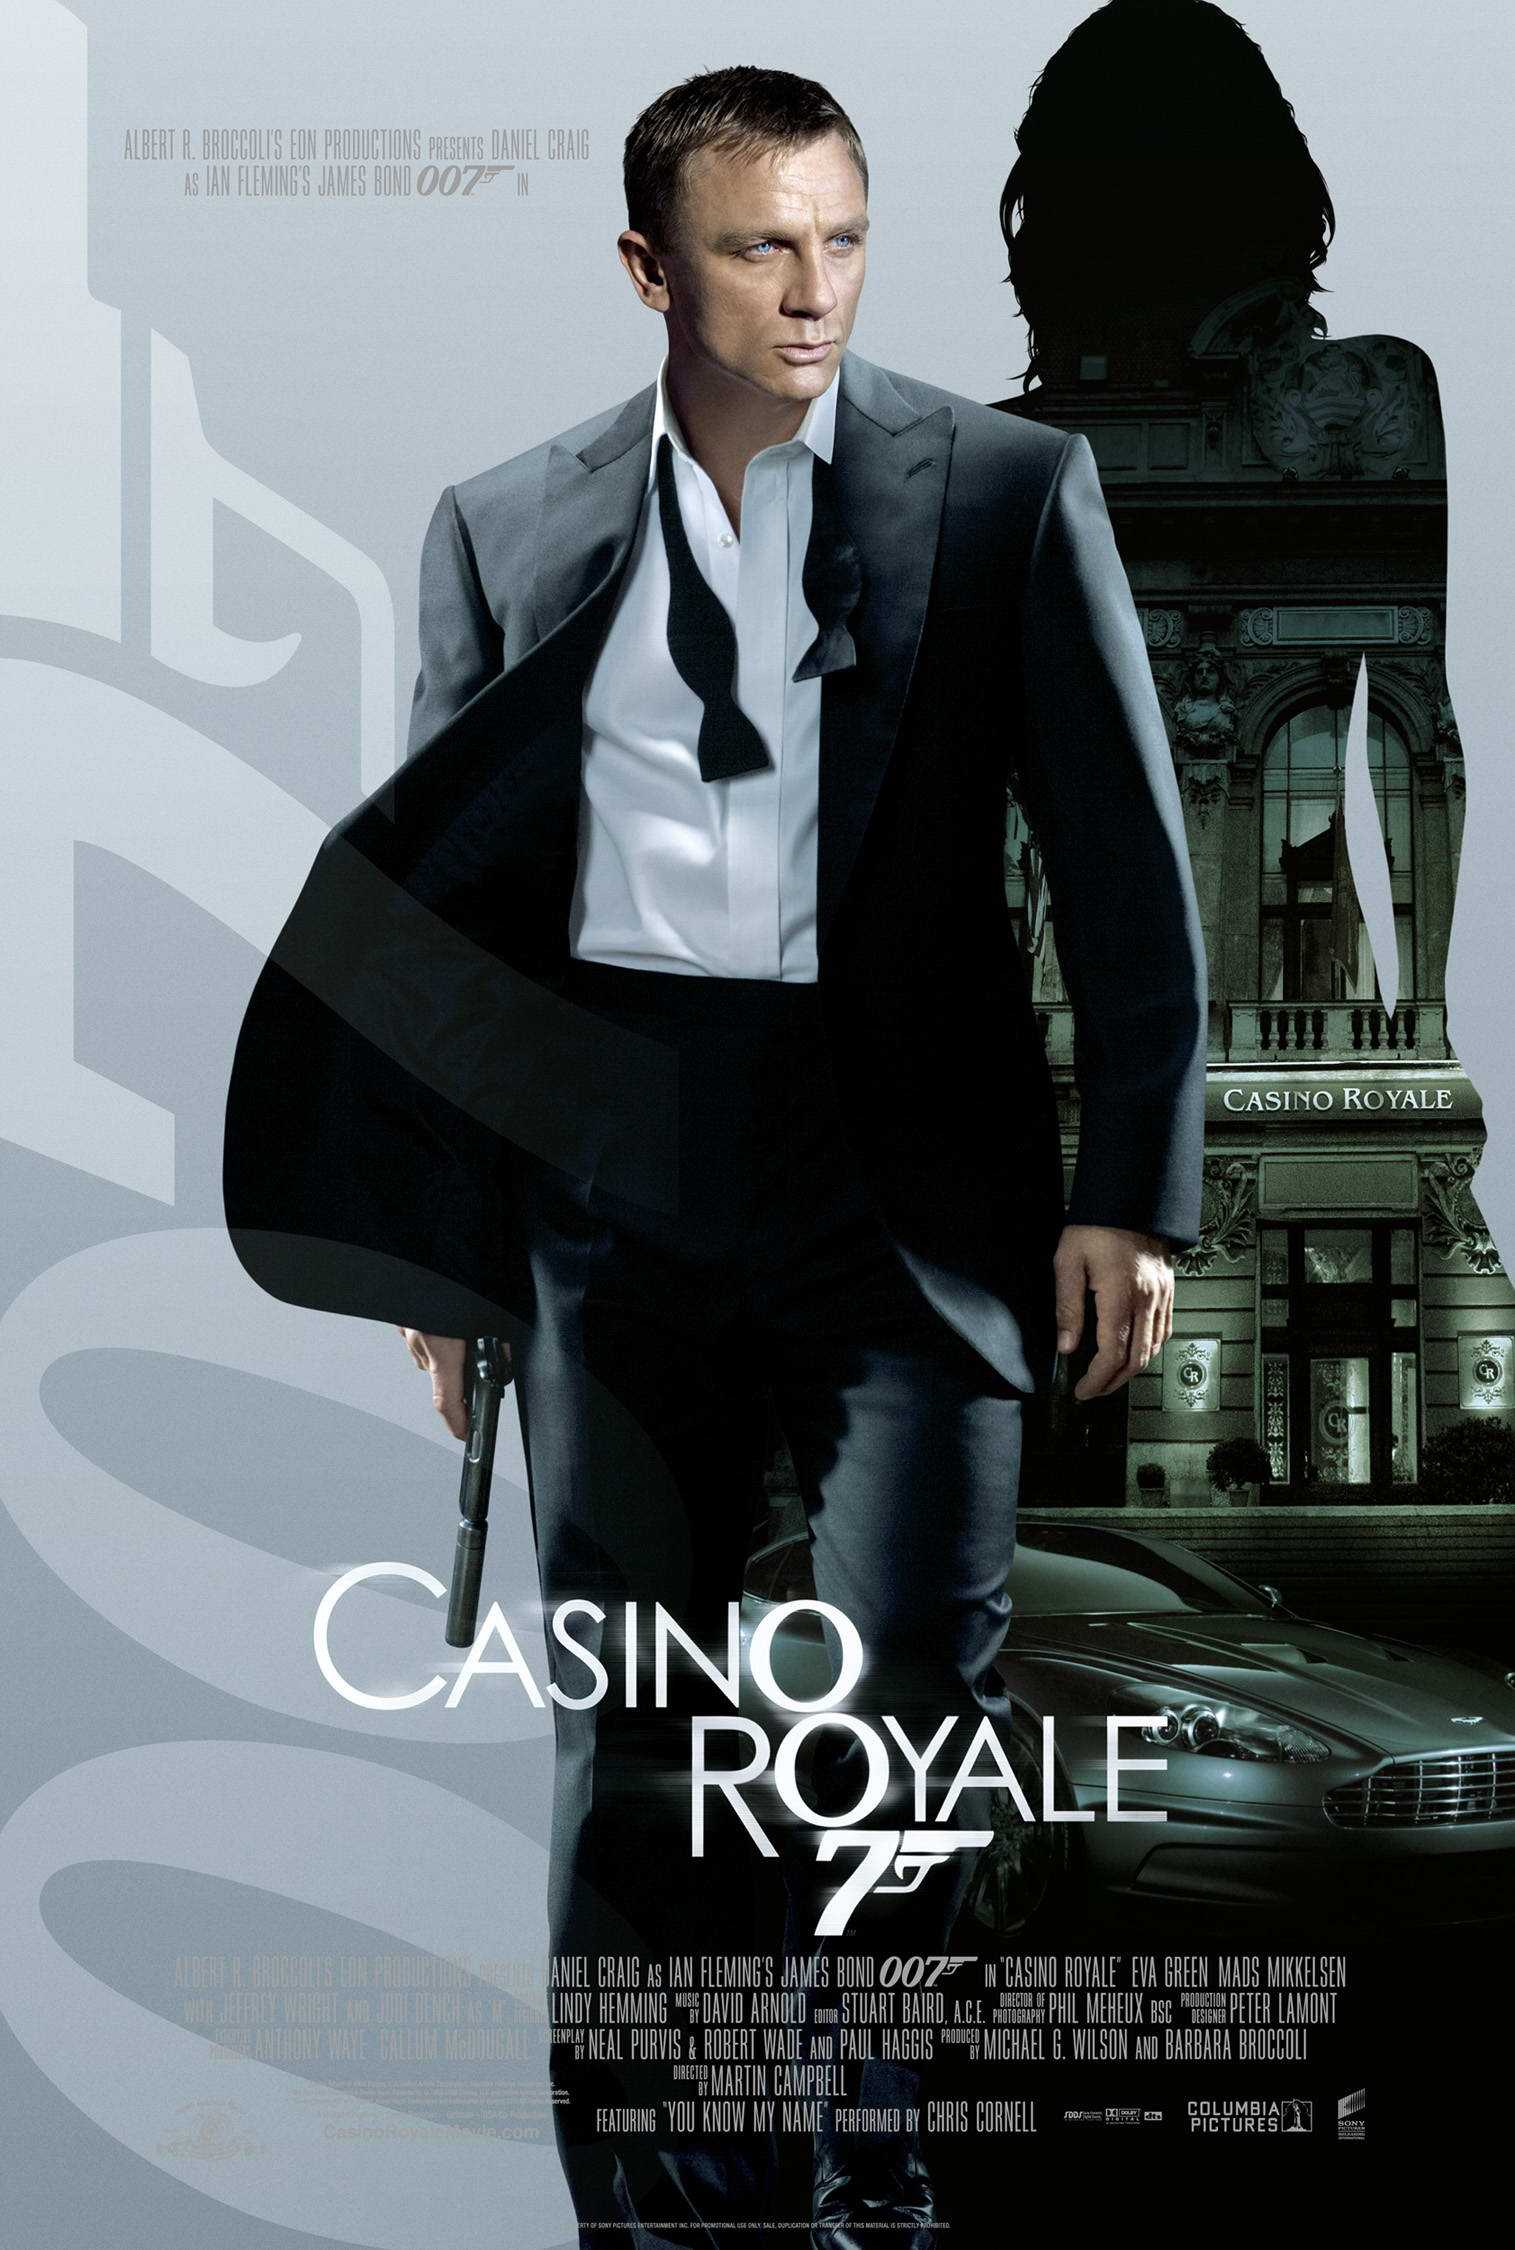 Watch casino royale 2006 online cliff castle casino bowling